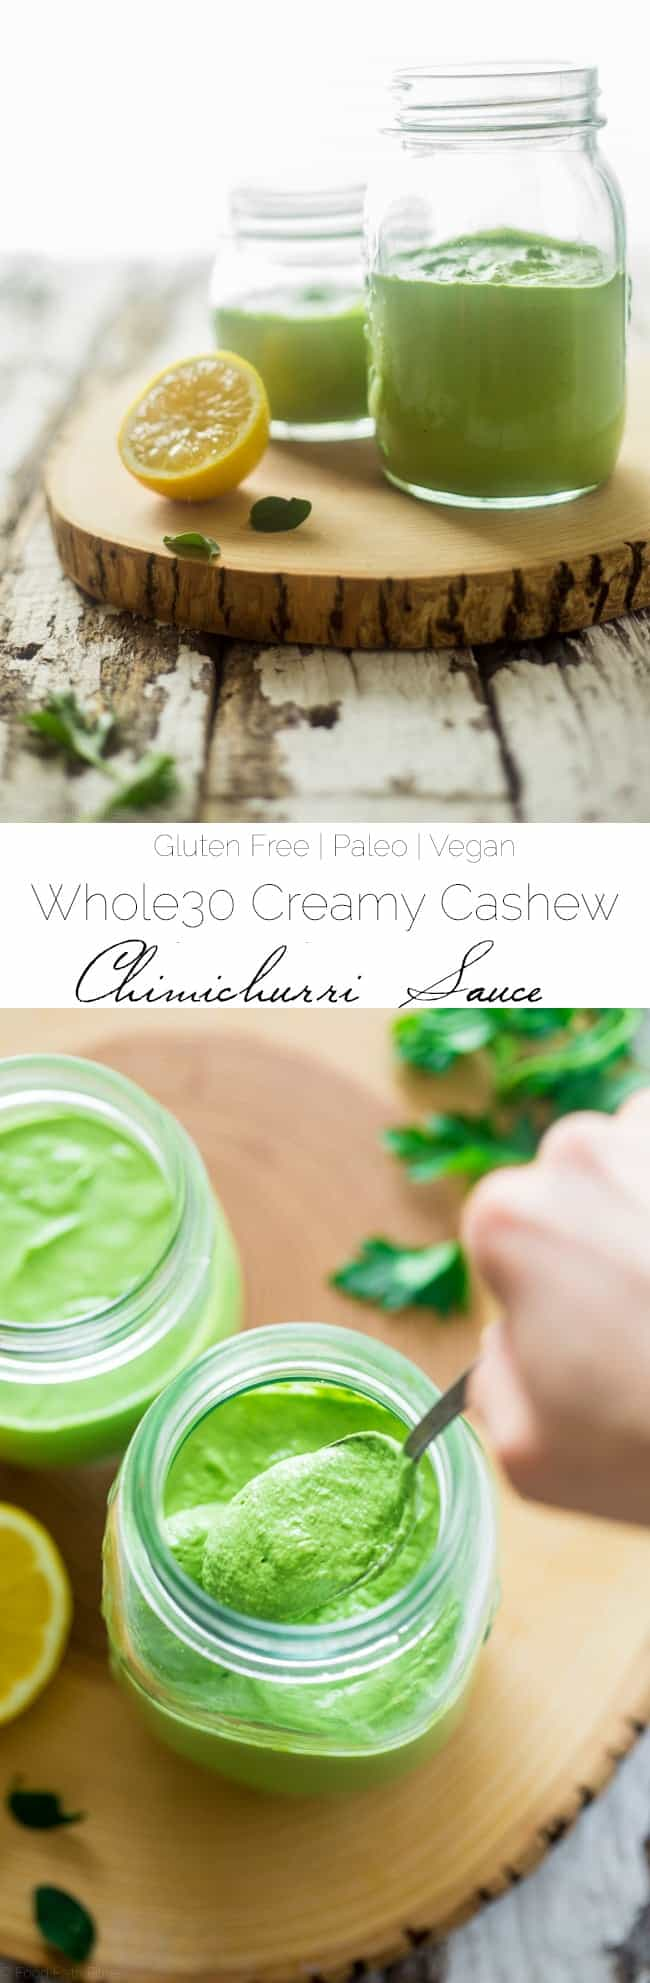 Whole30 Creamy Chimichurri Sauce - This chimichurri sauce uses a surprise ingredient to make it thick and creamy! It's a super easy, paleo, vegan and whole30 compliant addition to many meals! | Foodfaithfitness.com | @FoodFaithFit